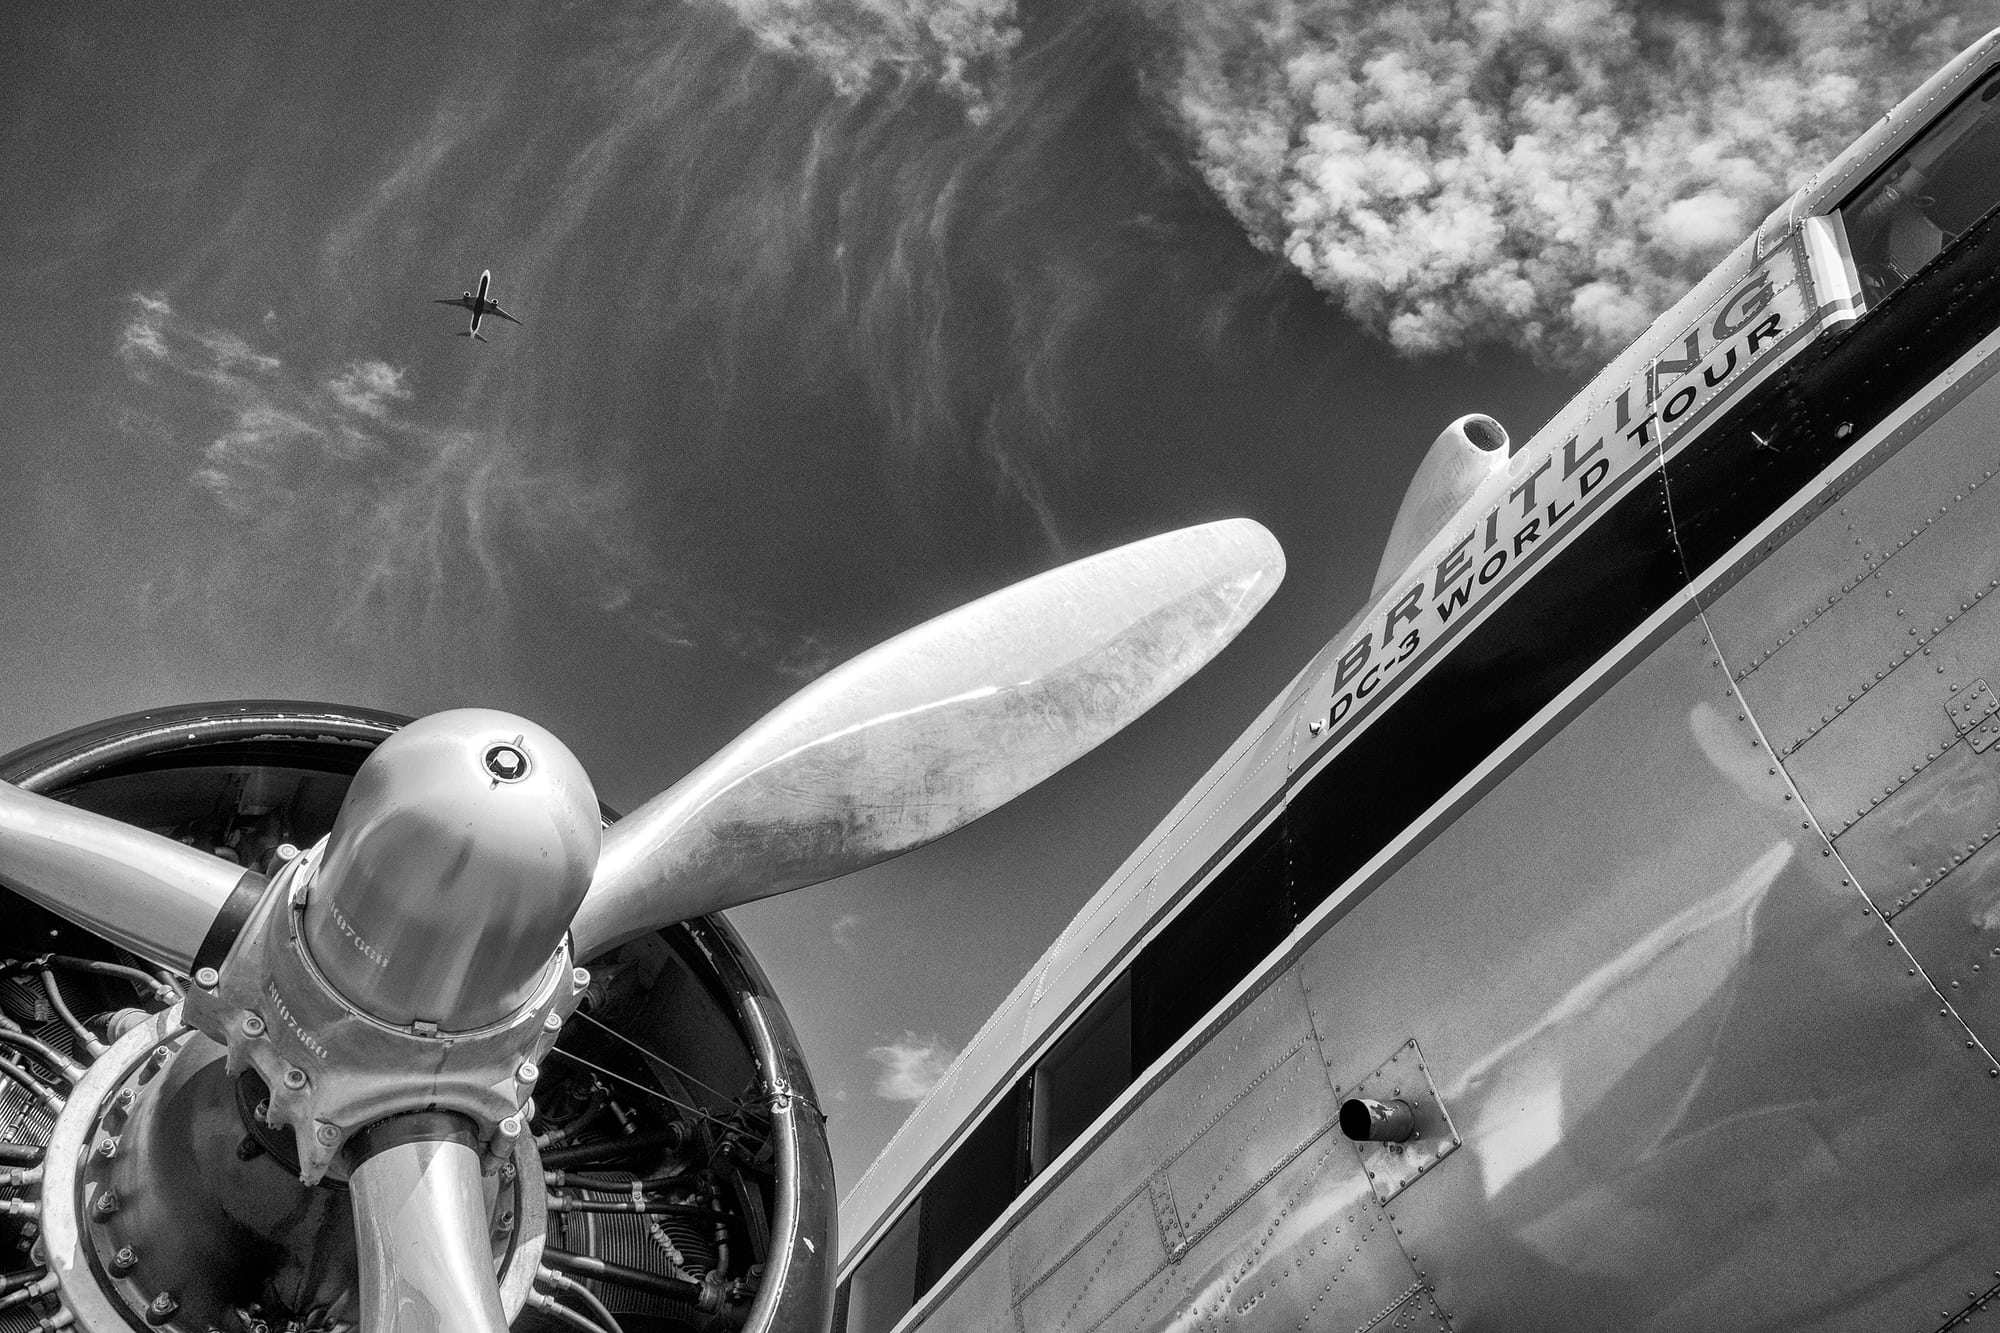 Breitling DC-3 engine propellers Dispatches: Breitling's DC-3 To Become Oldest Aircraft Ever To Circle The Earth Dispatches: Breitling's DC-3 To Become Oldest Aircraft Ever To Circle The Earth P8212271 bw